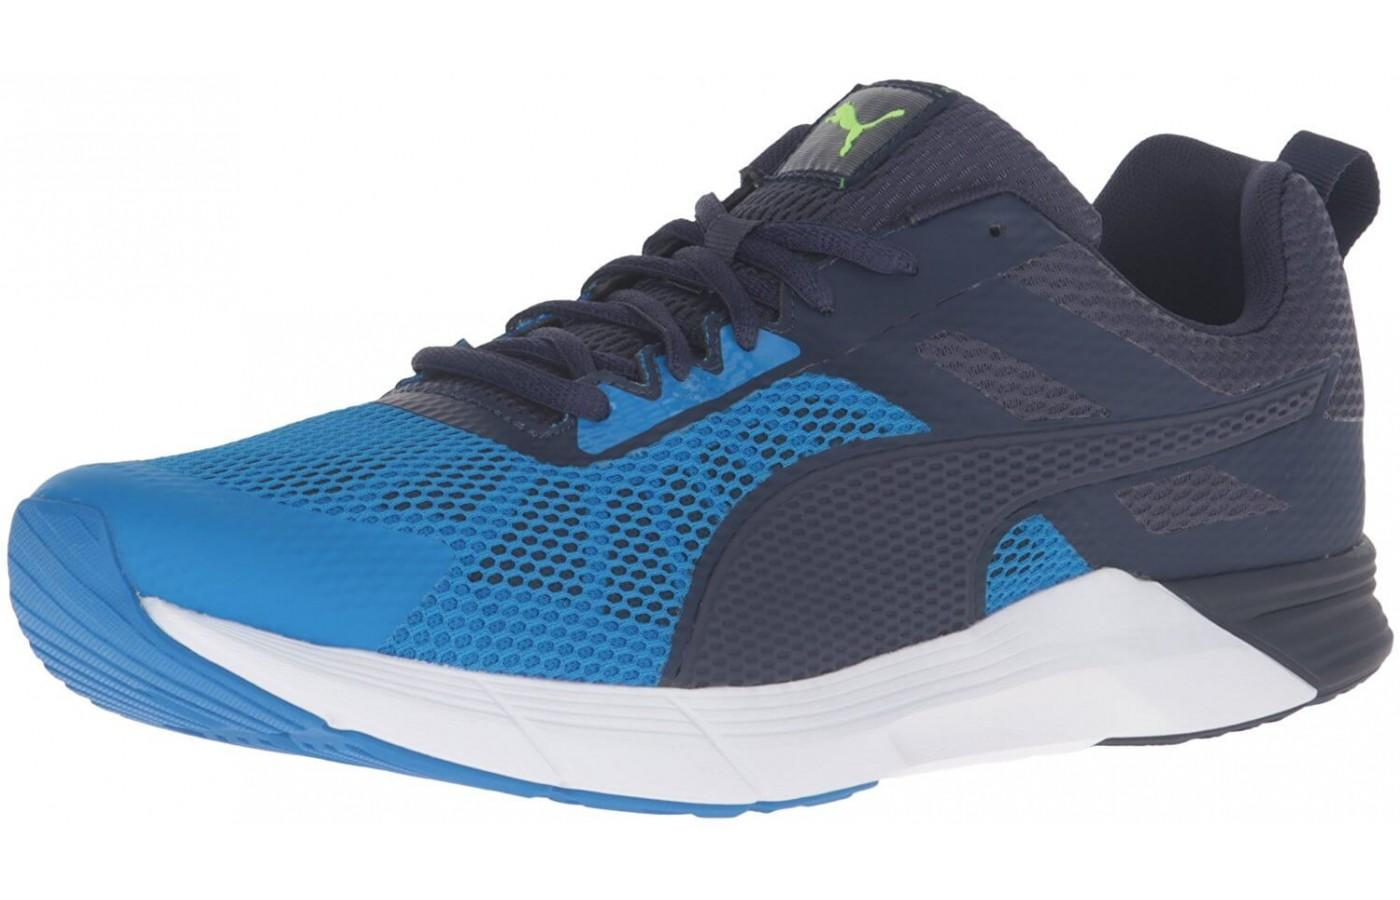 Puma Propel Reviewed & Rated 2020